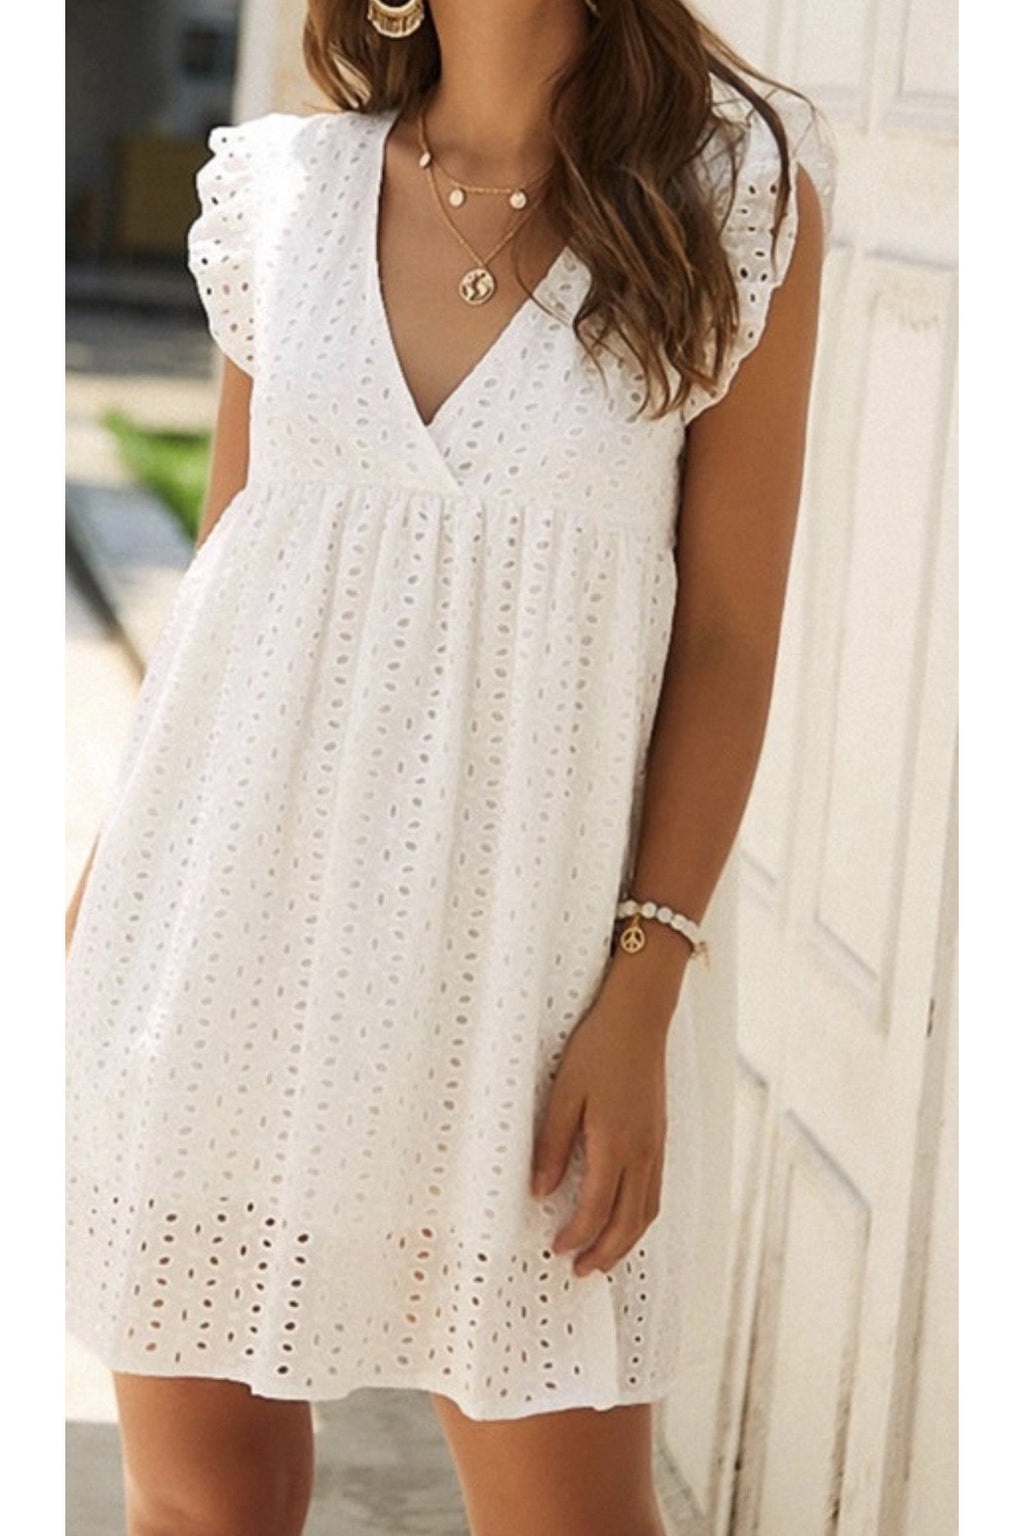 Emily Eyelet Dress in white